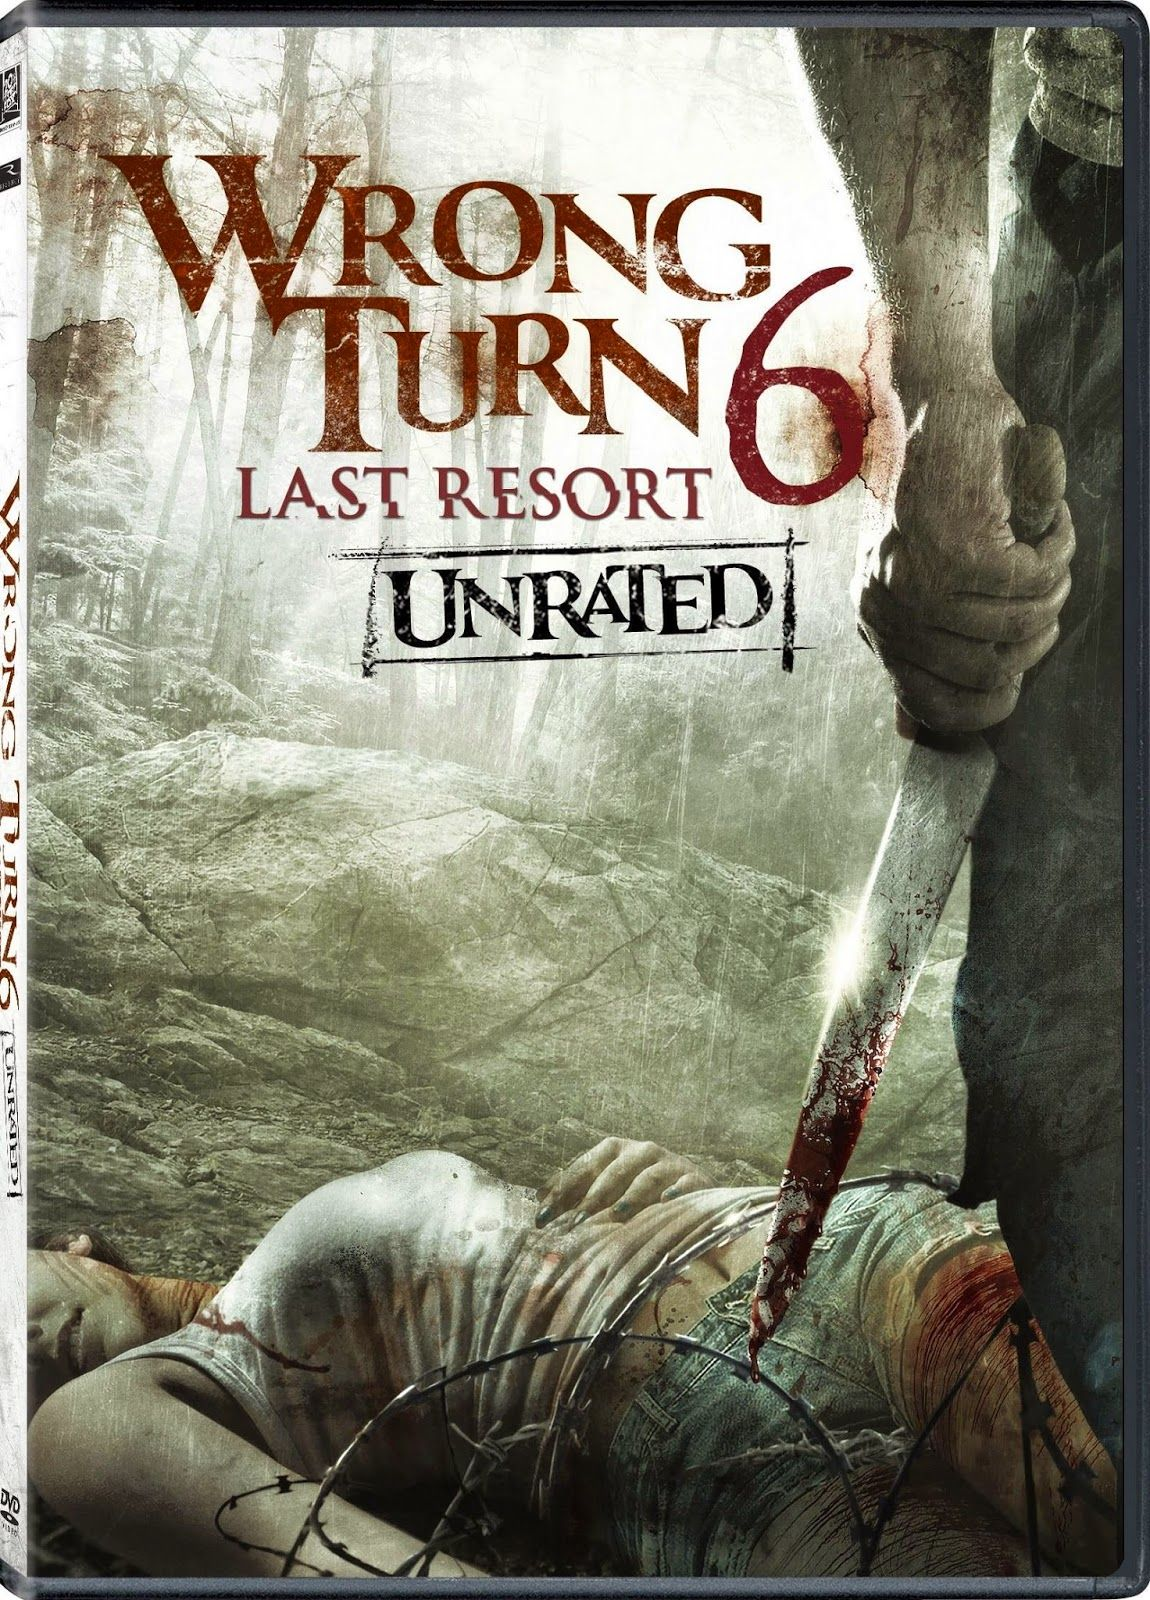 Wrong turn 5 | download wrong turn 5 (2011) english brrip | web pedia.